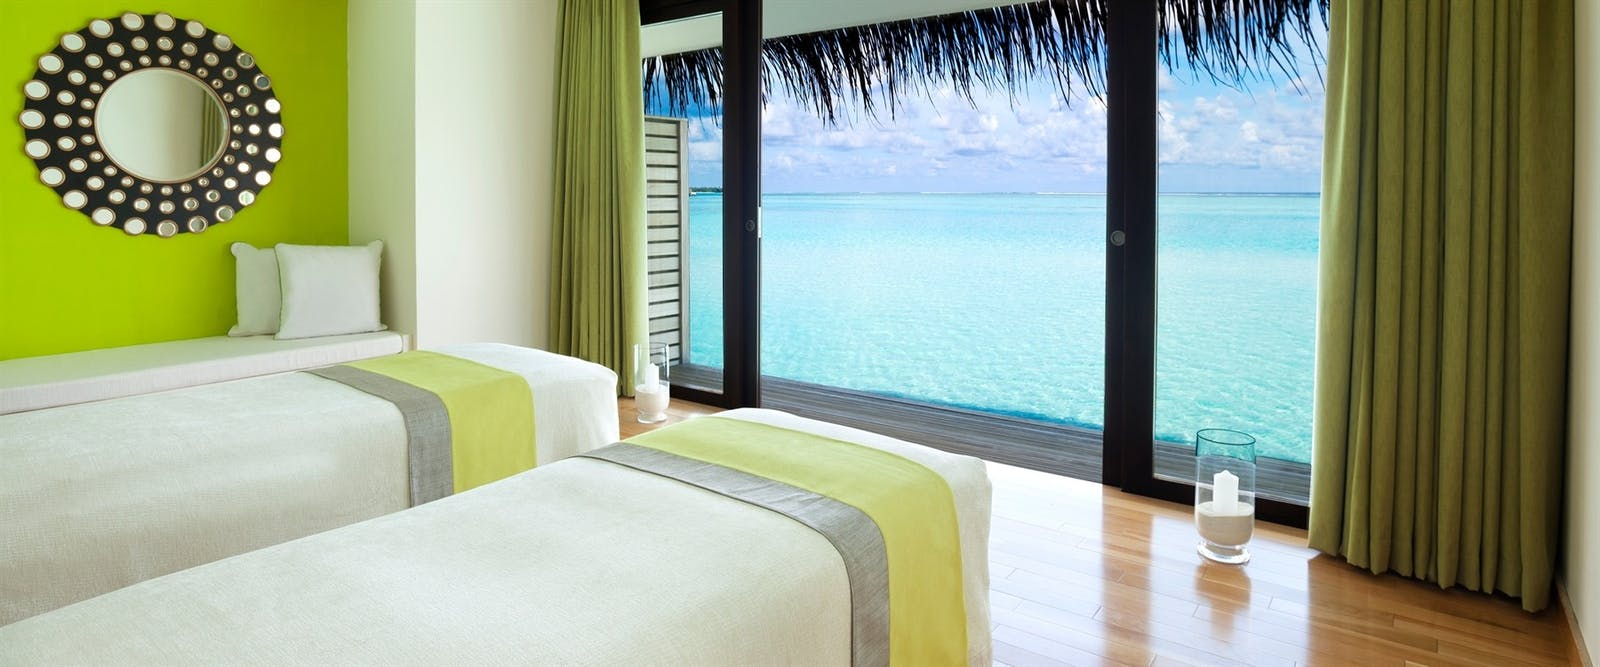 LIME Spa Treatment Room at Niyama Private Islands, Maldives, Indian Ocean